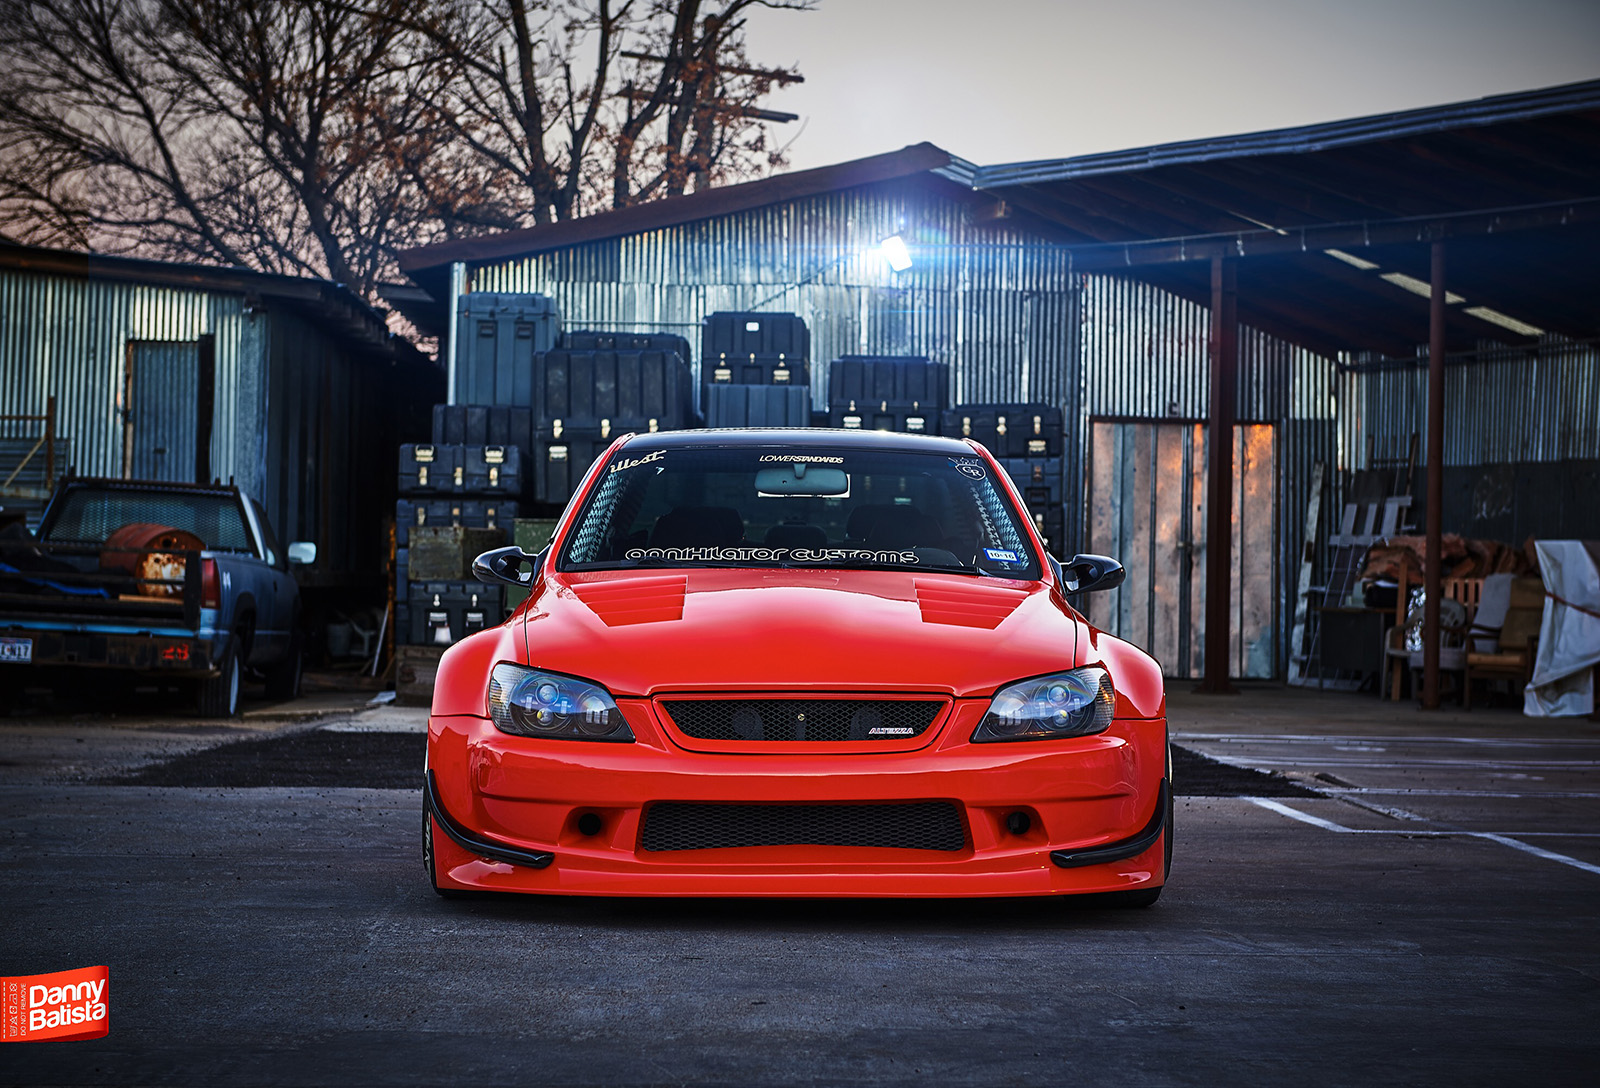 03 Roy Moncada 2003 Lexus IS300 Tuner Battlegrounds